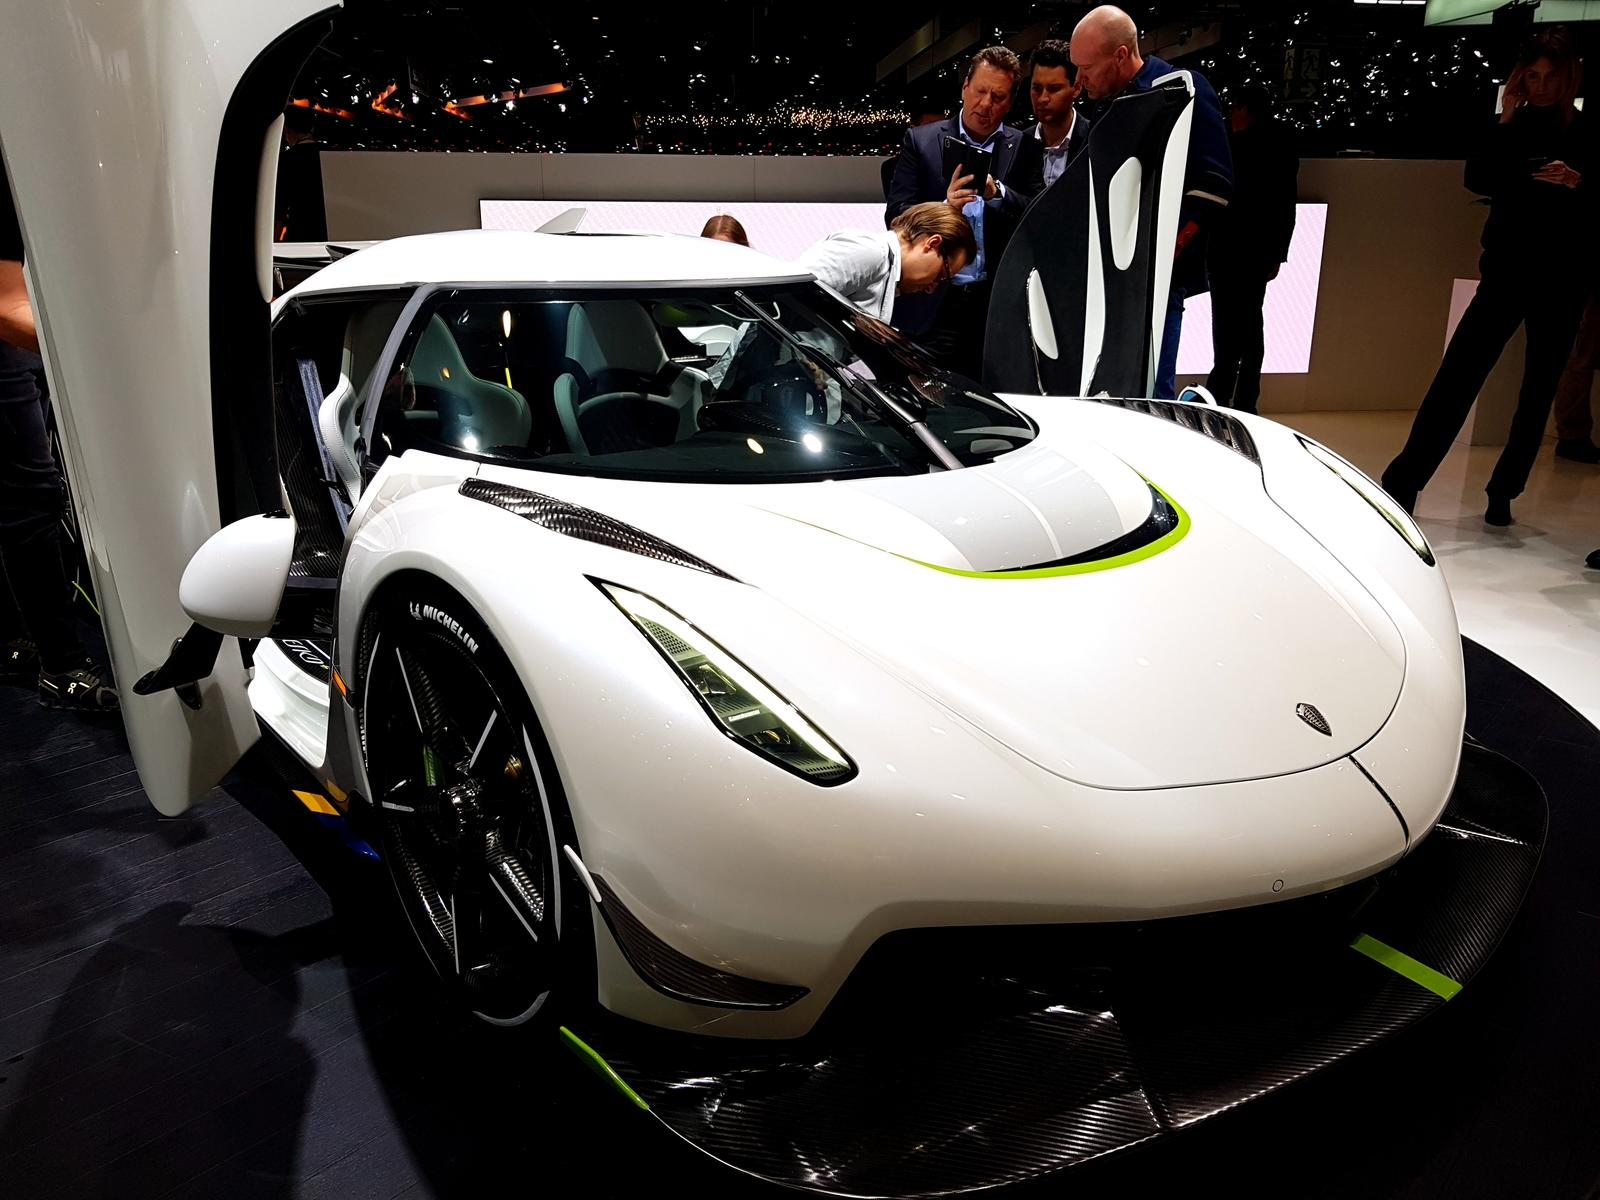 2020 Koenigsegg Jesko Packs More Than 1 500 Hp And Could Hit 300 Mph